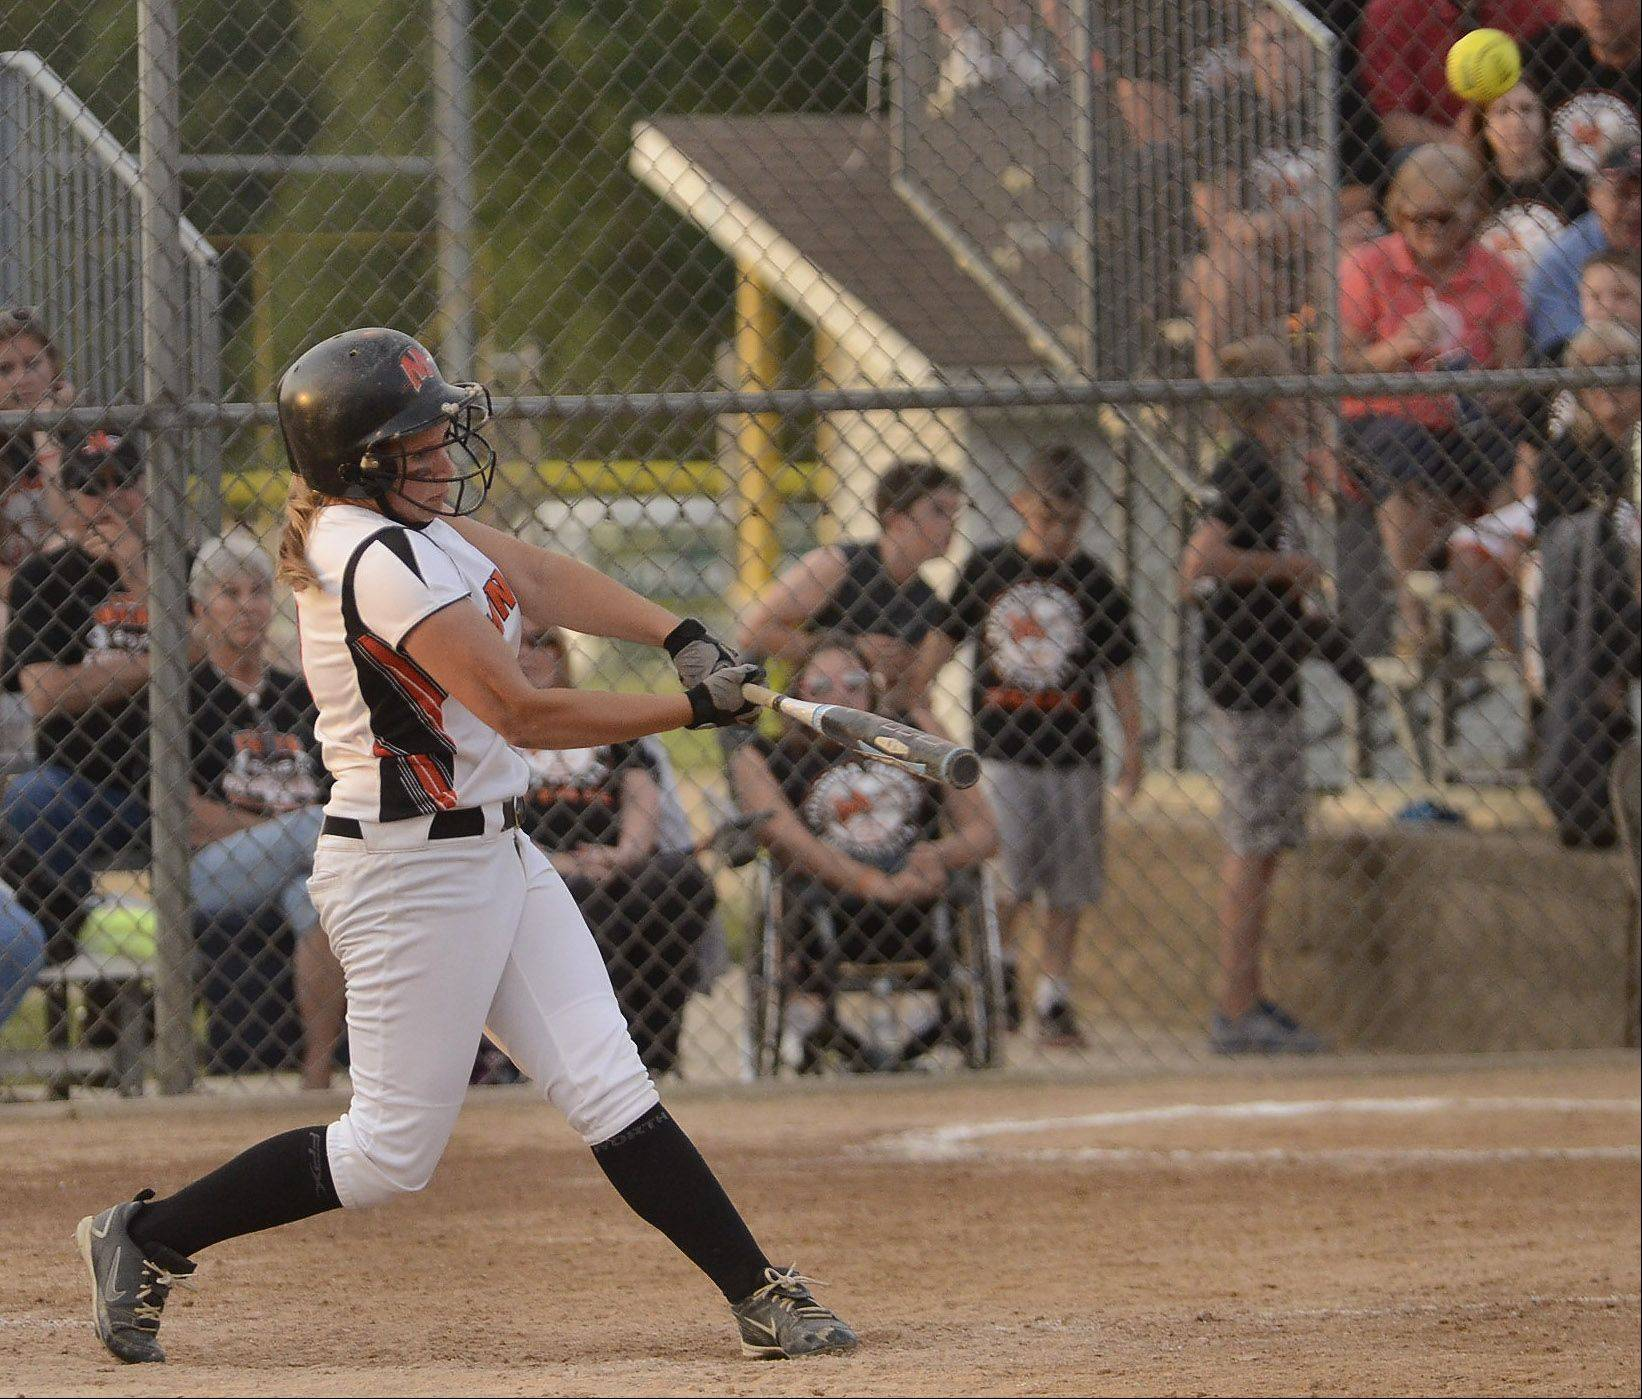 Minooka's Rachel May hits the game winning home run against St. Charles East in the Class 4A softball championship game.